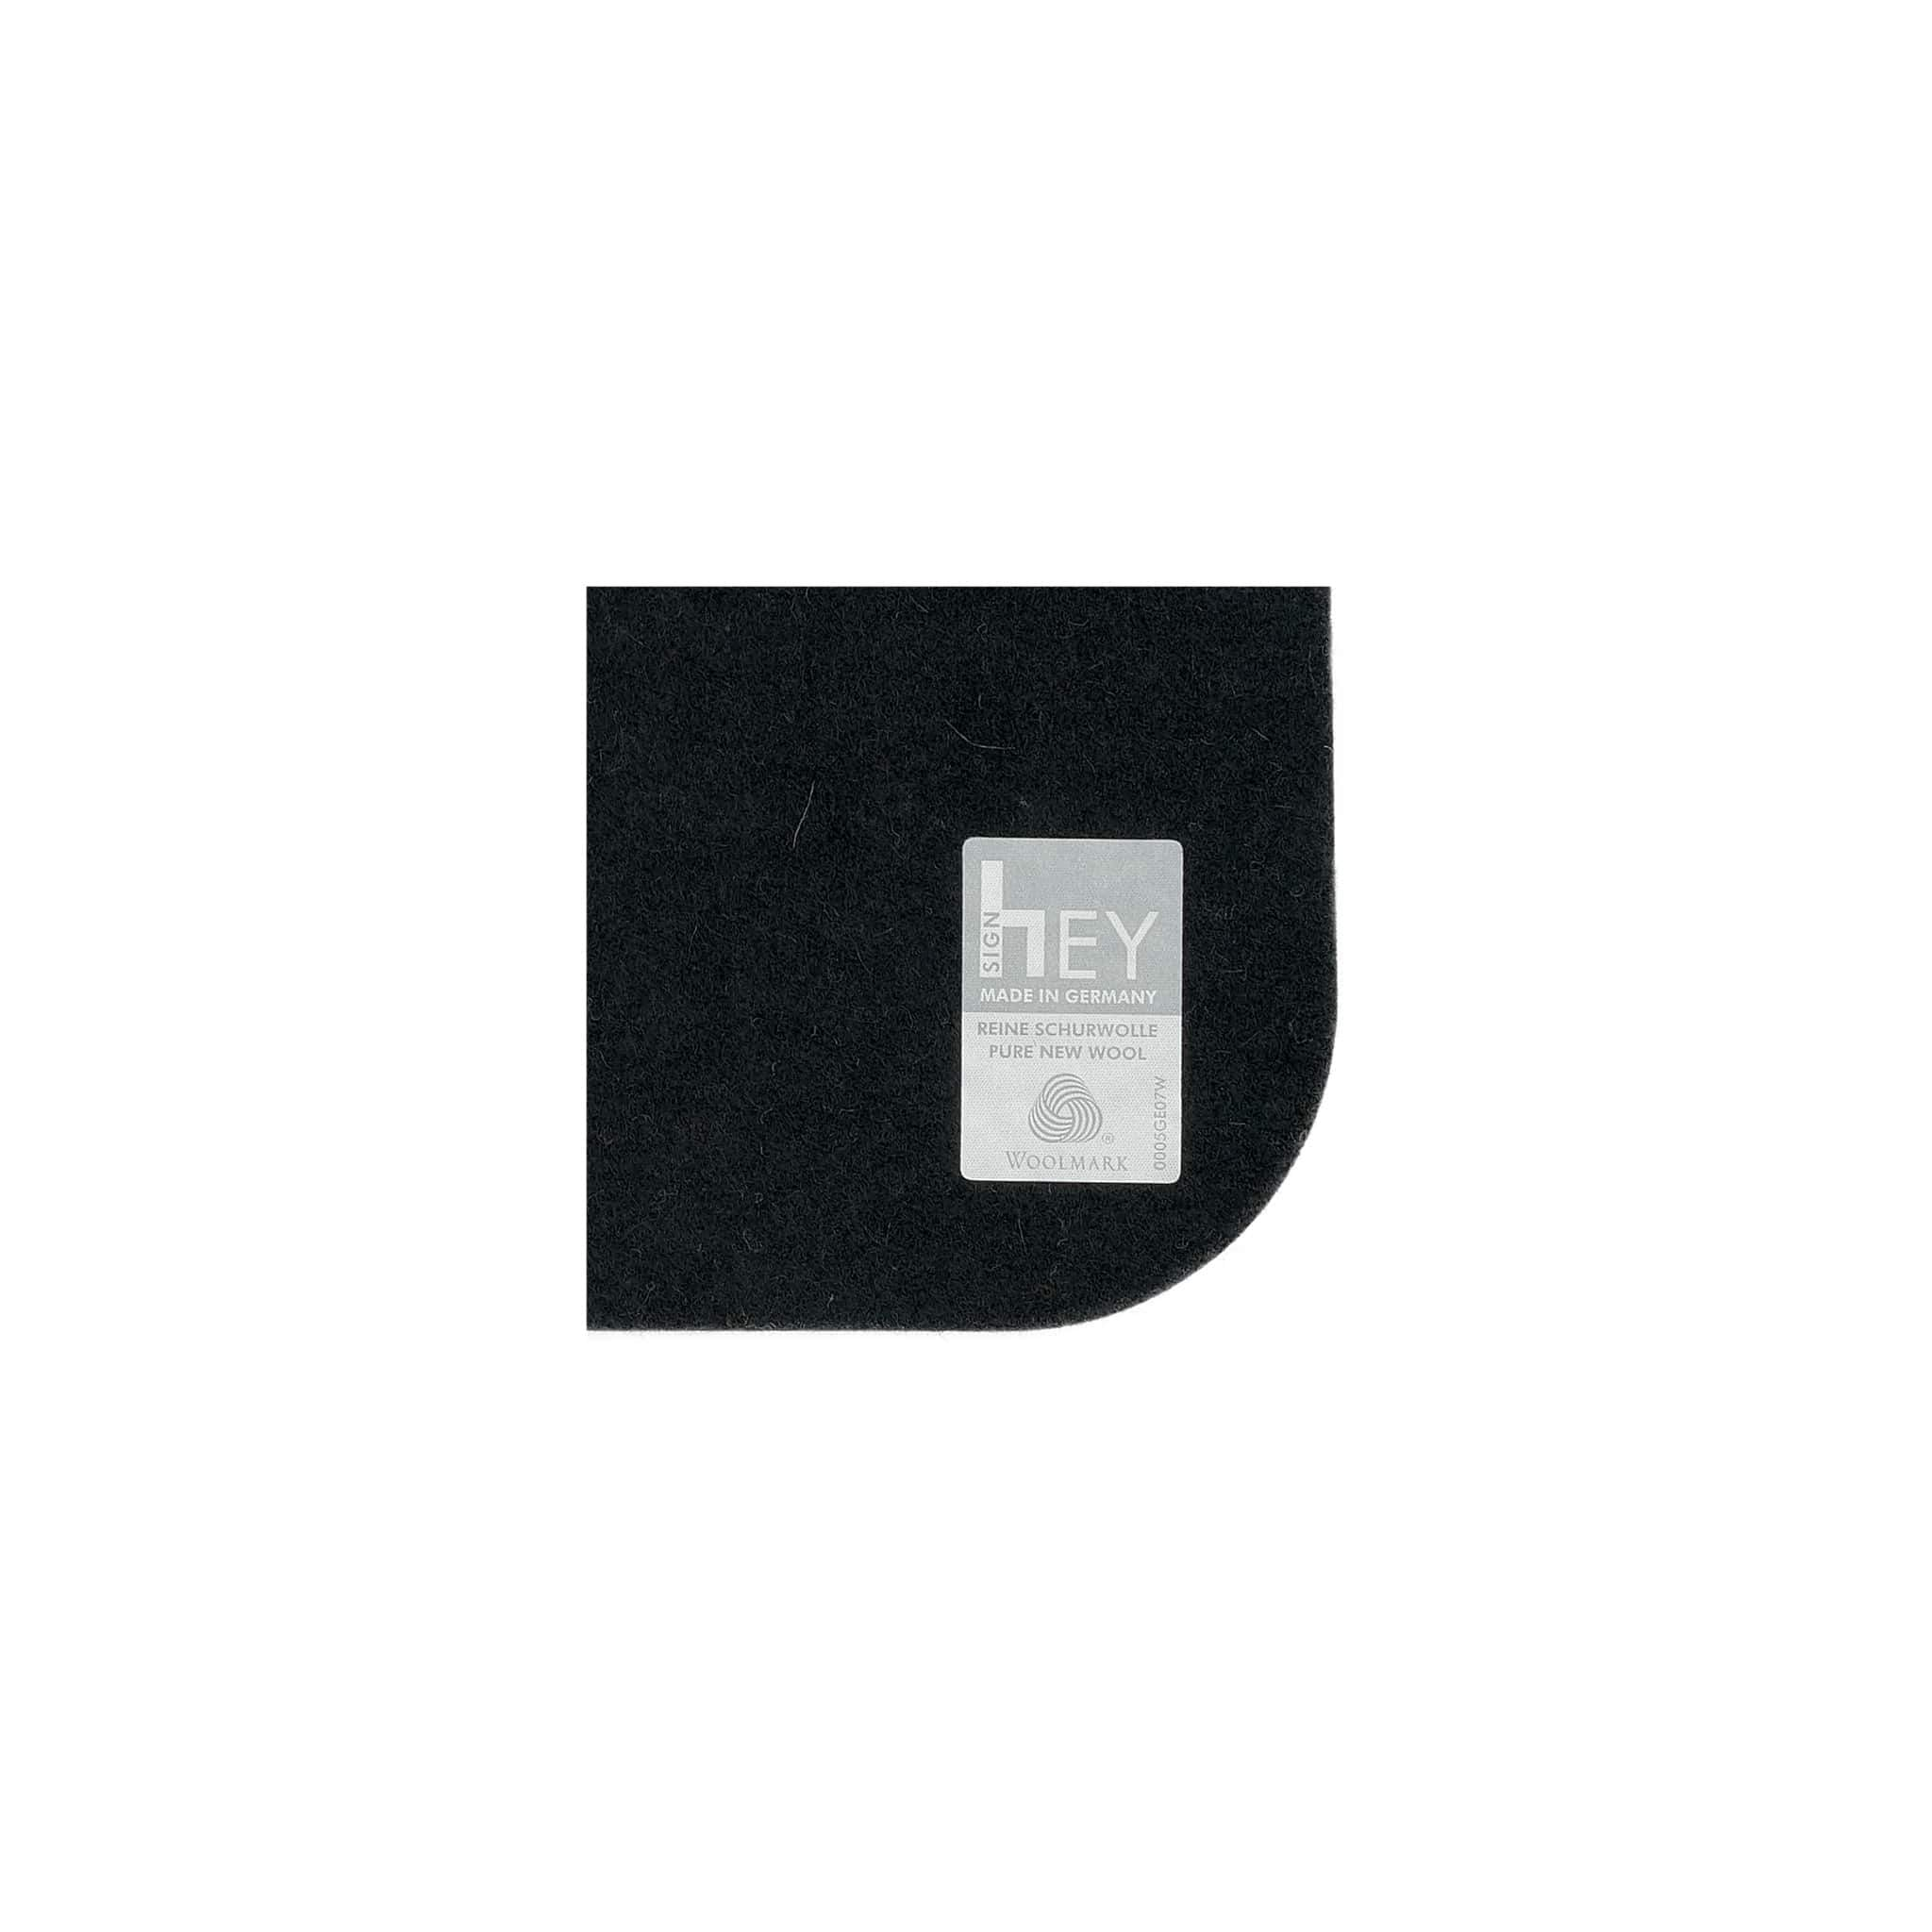 Rectangular Felt Placemat in Black by Hey-Sign 300134502 looking at Closeup-Label